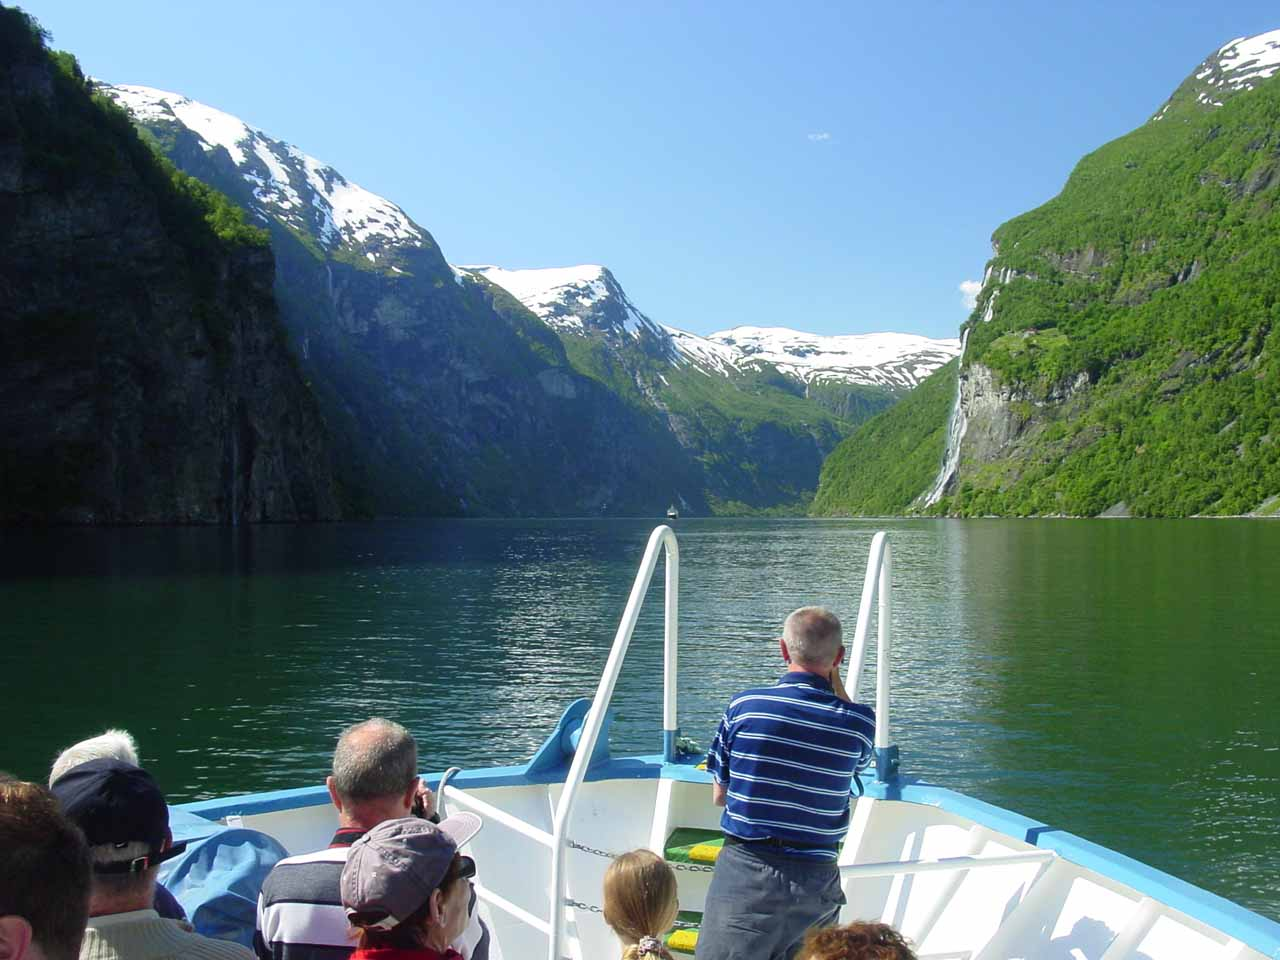 Looking ahead towards the Seven Sisters and the middle of Geirangerfjorden